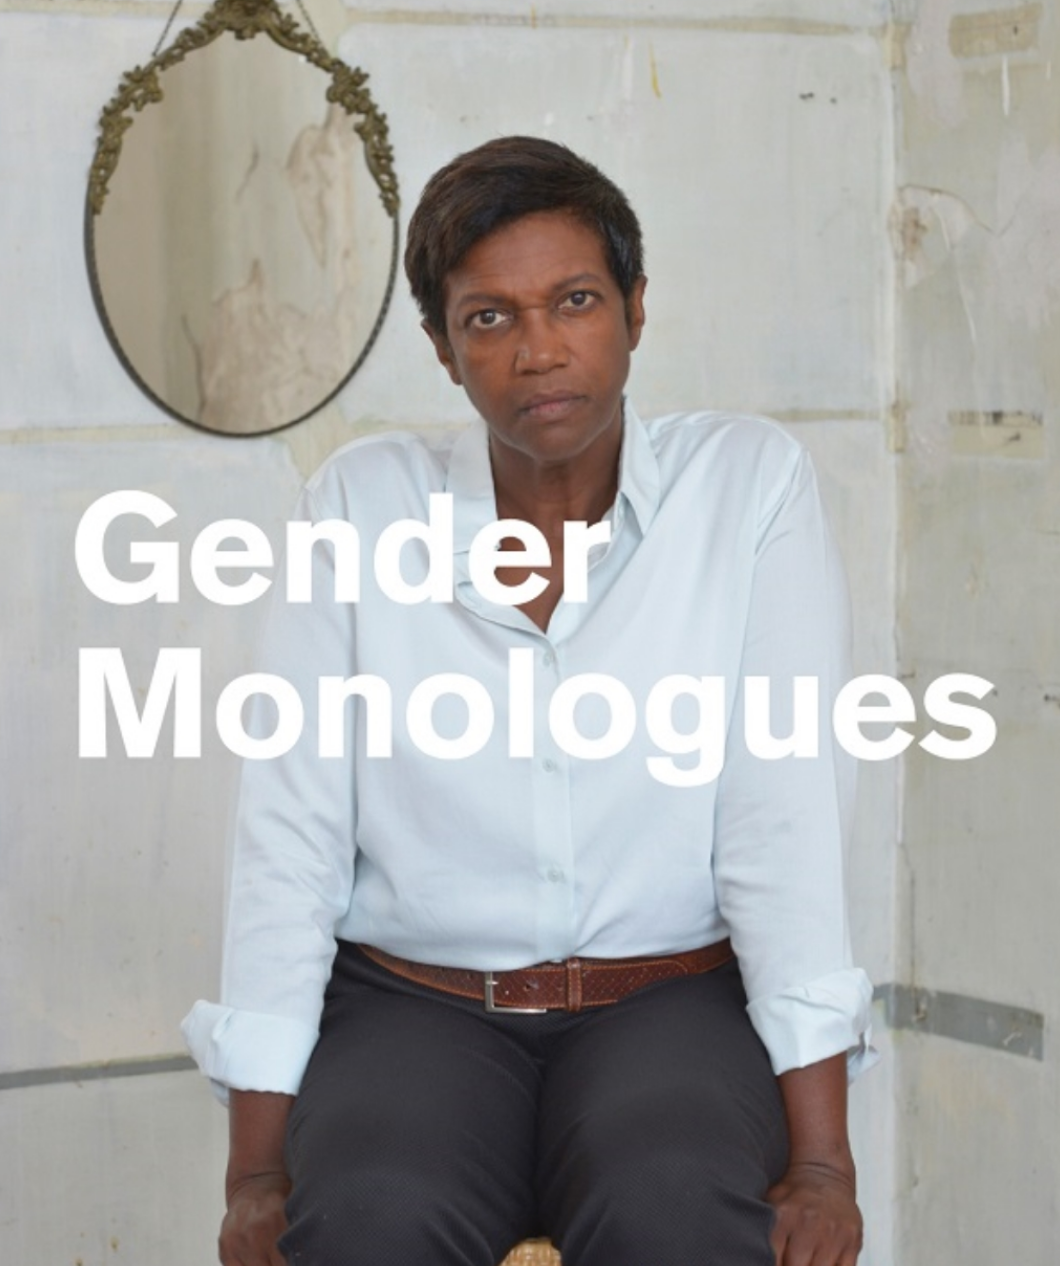 Nieuw Dakota: Gender Monologues